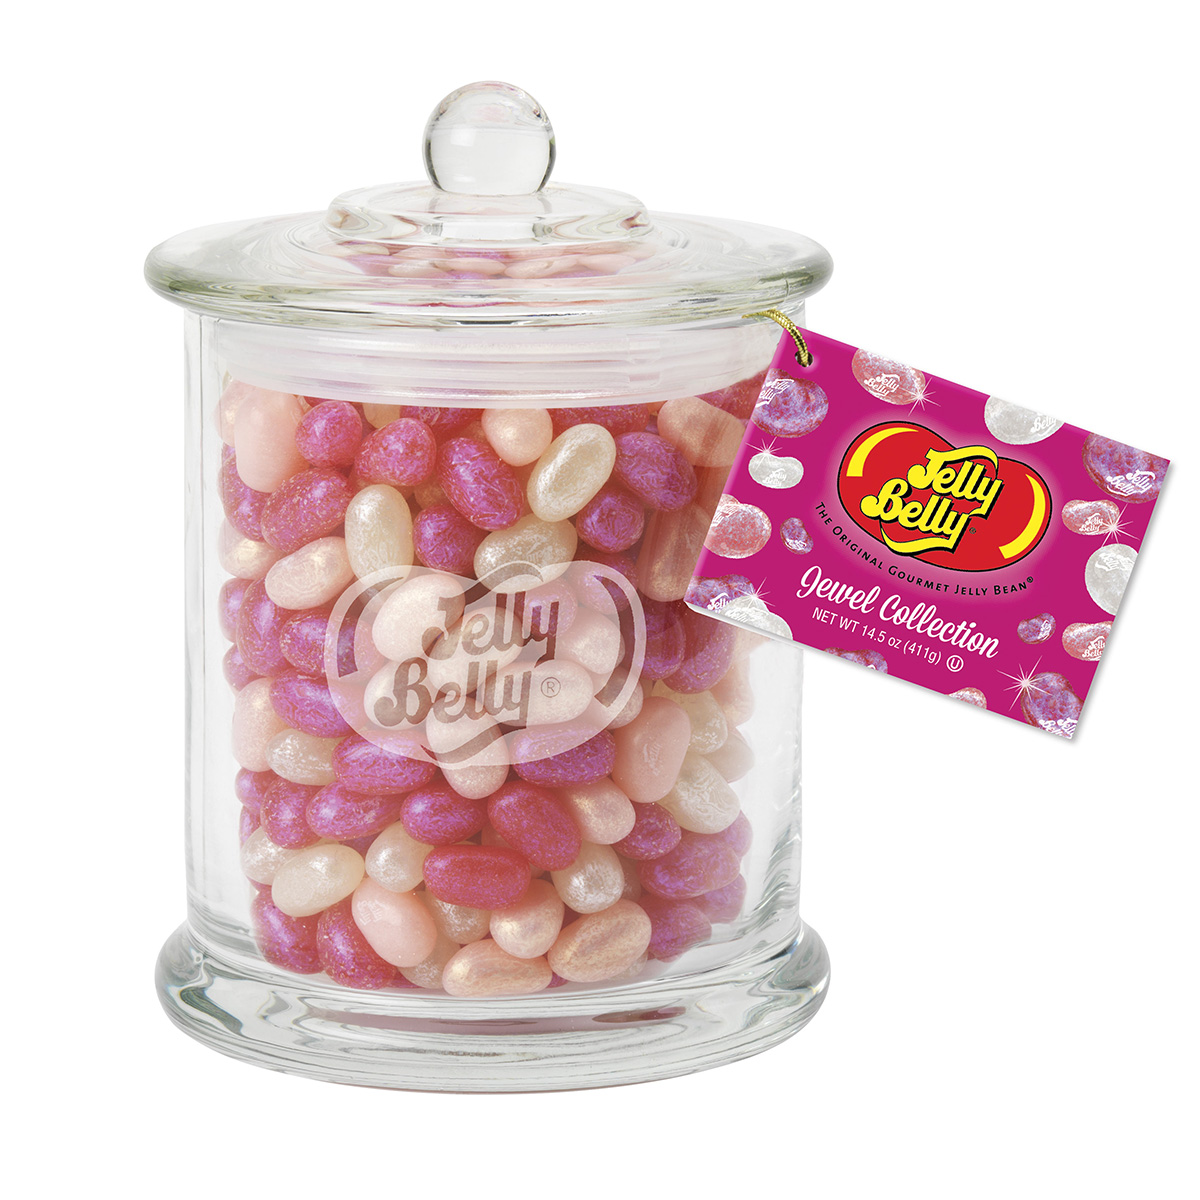 Jewel Collection Candy Jar